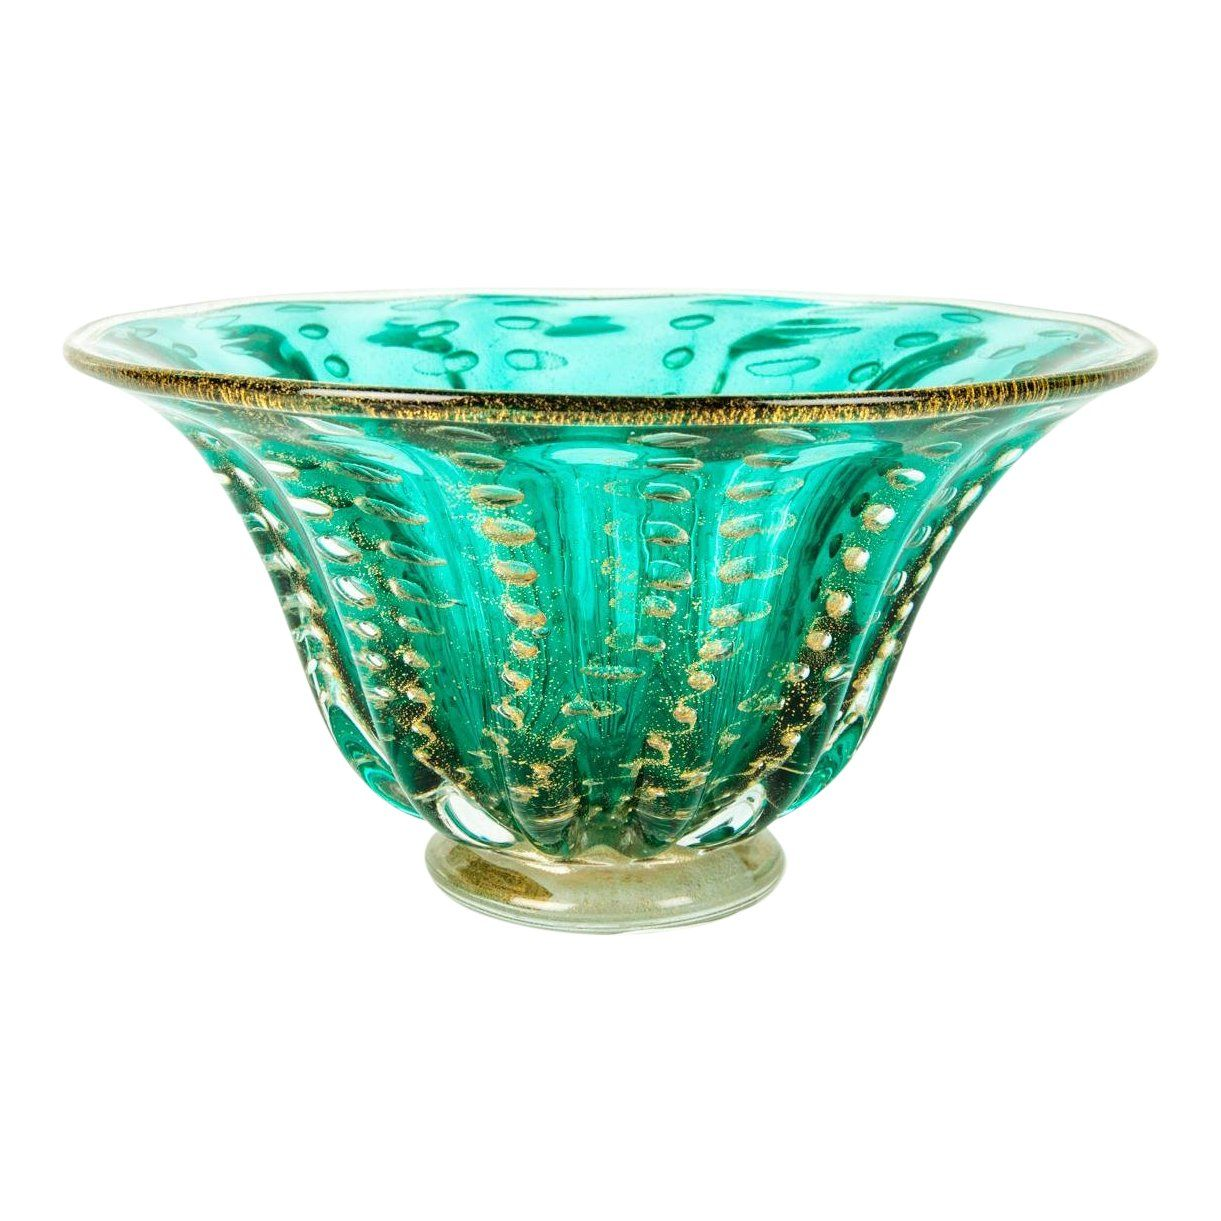 Midcentury Murano Glass Decorative Piece Bowl Image 1 Of 6